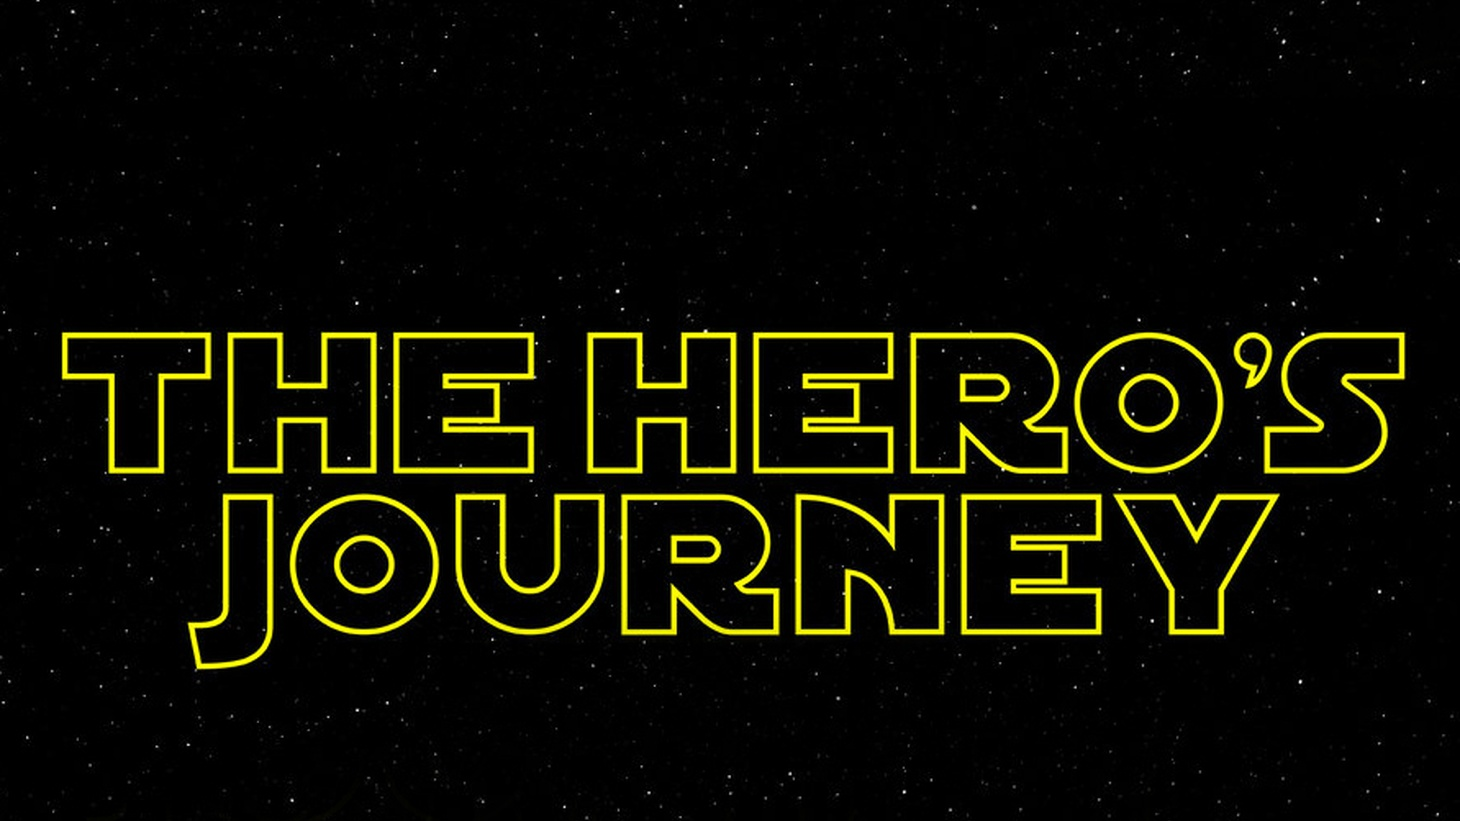 From the Odyssey, to Robinson Crusoe, to Star Wars — why are we drawn to stories about heroes? And what do they tell us about ourselves? TED speakers explore what makes a hero's journey.